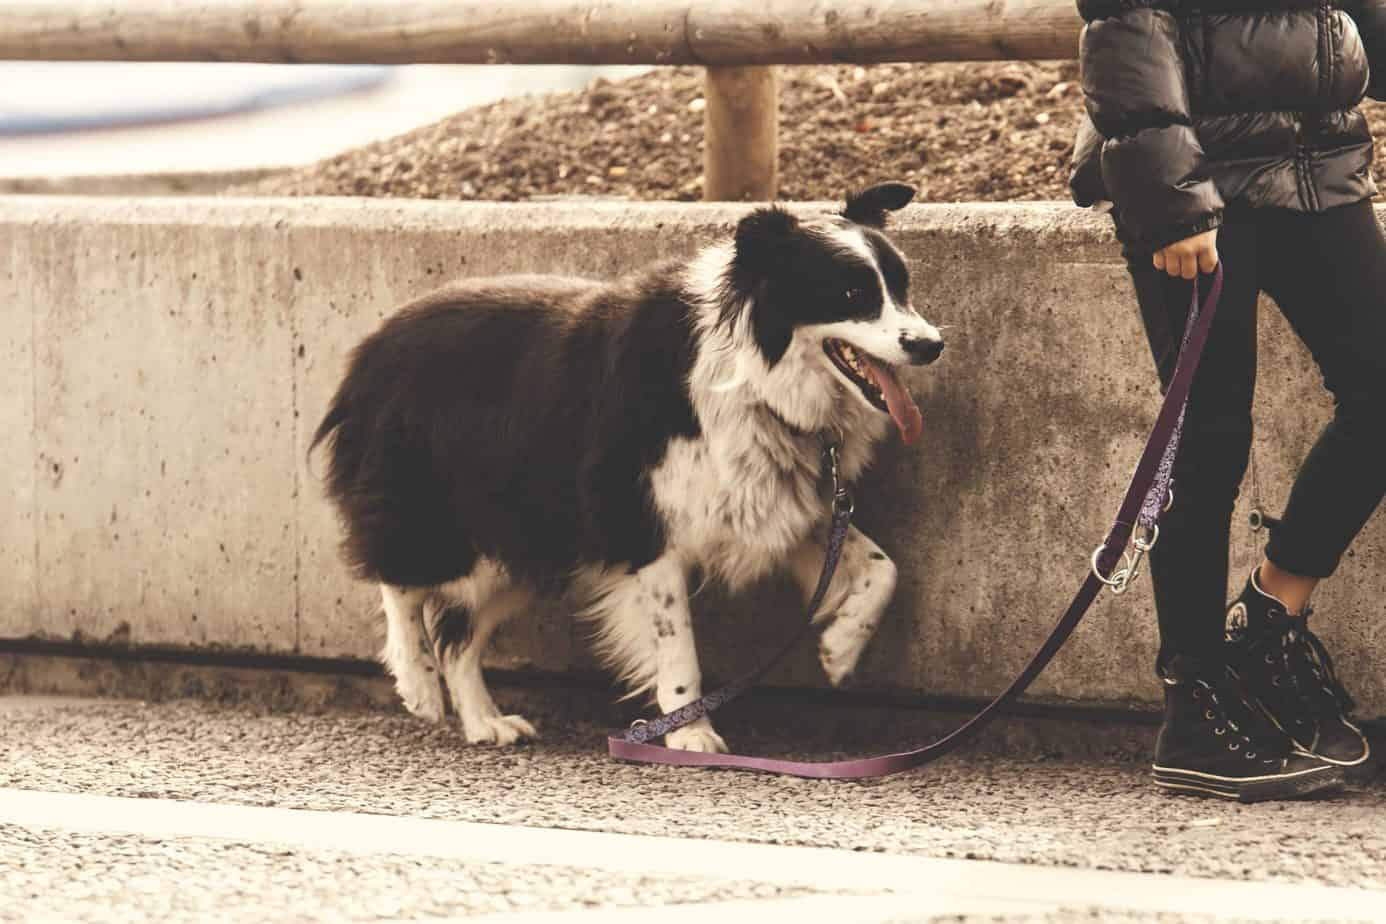 Use Your Dog to Get a Good Cardio Workout